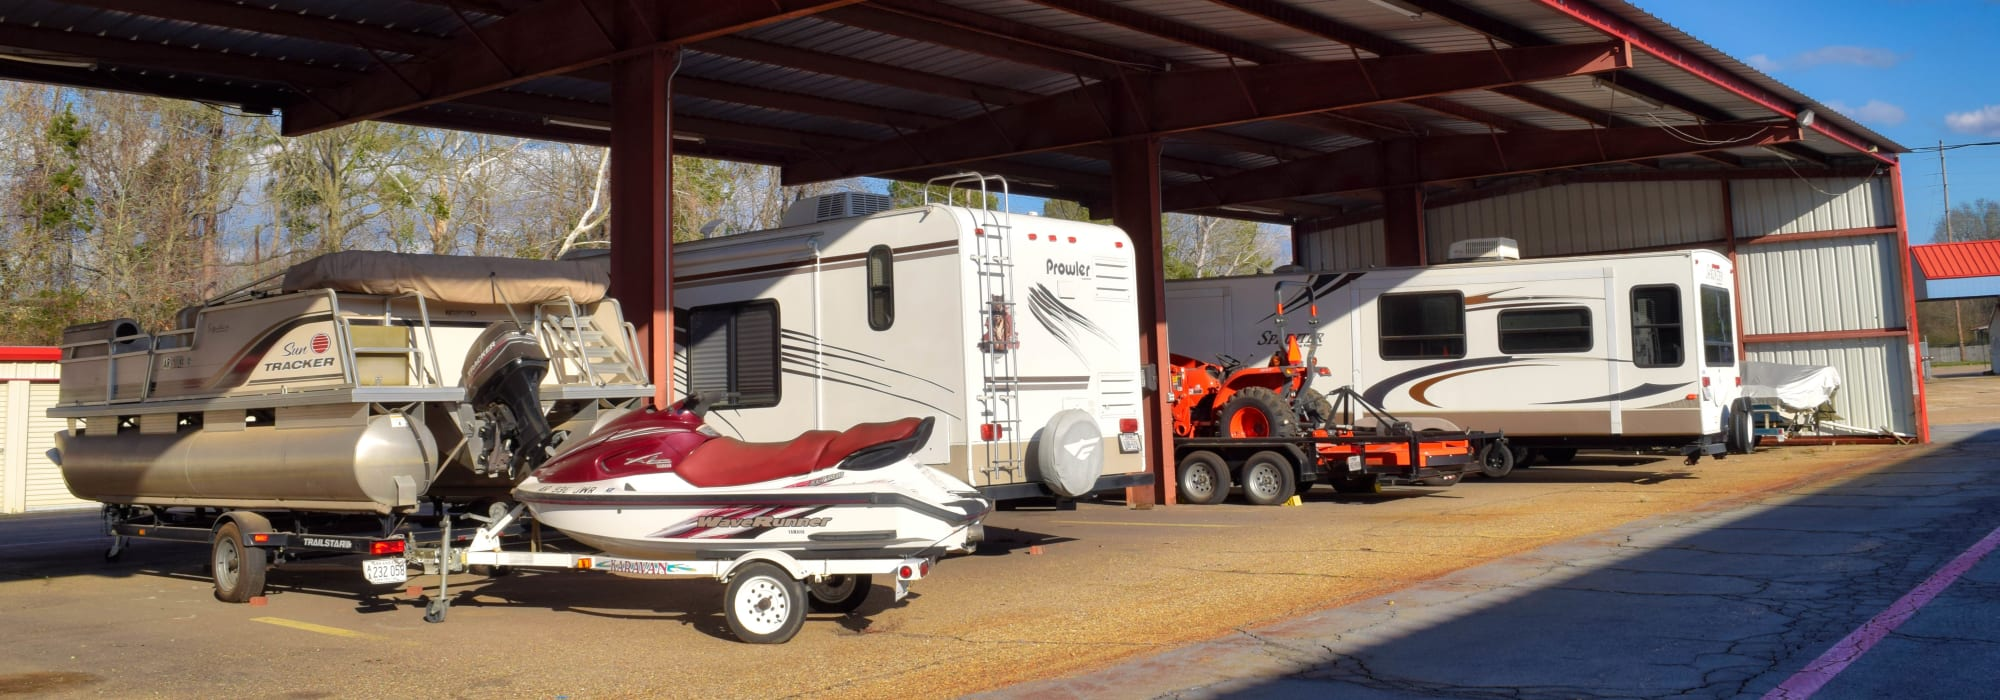 RV, Auto, & Boat Storage at Lockaway Storage in Texarkana, Texas